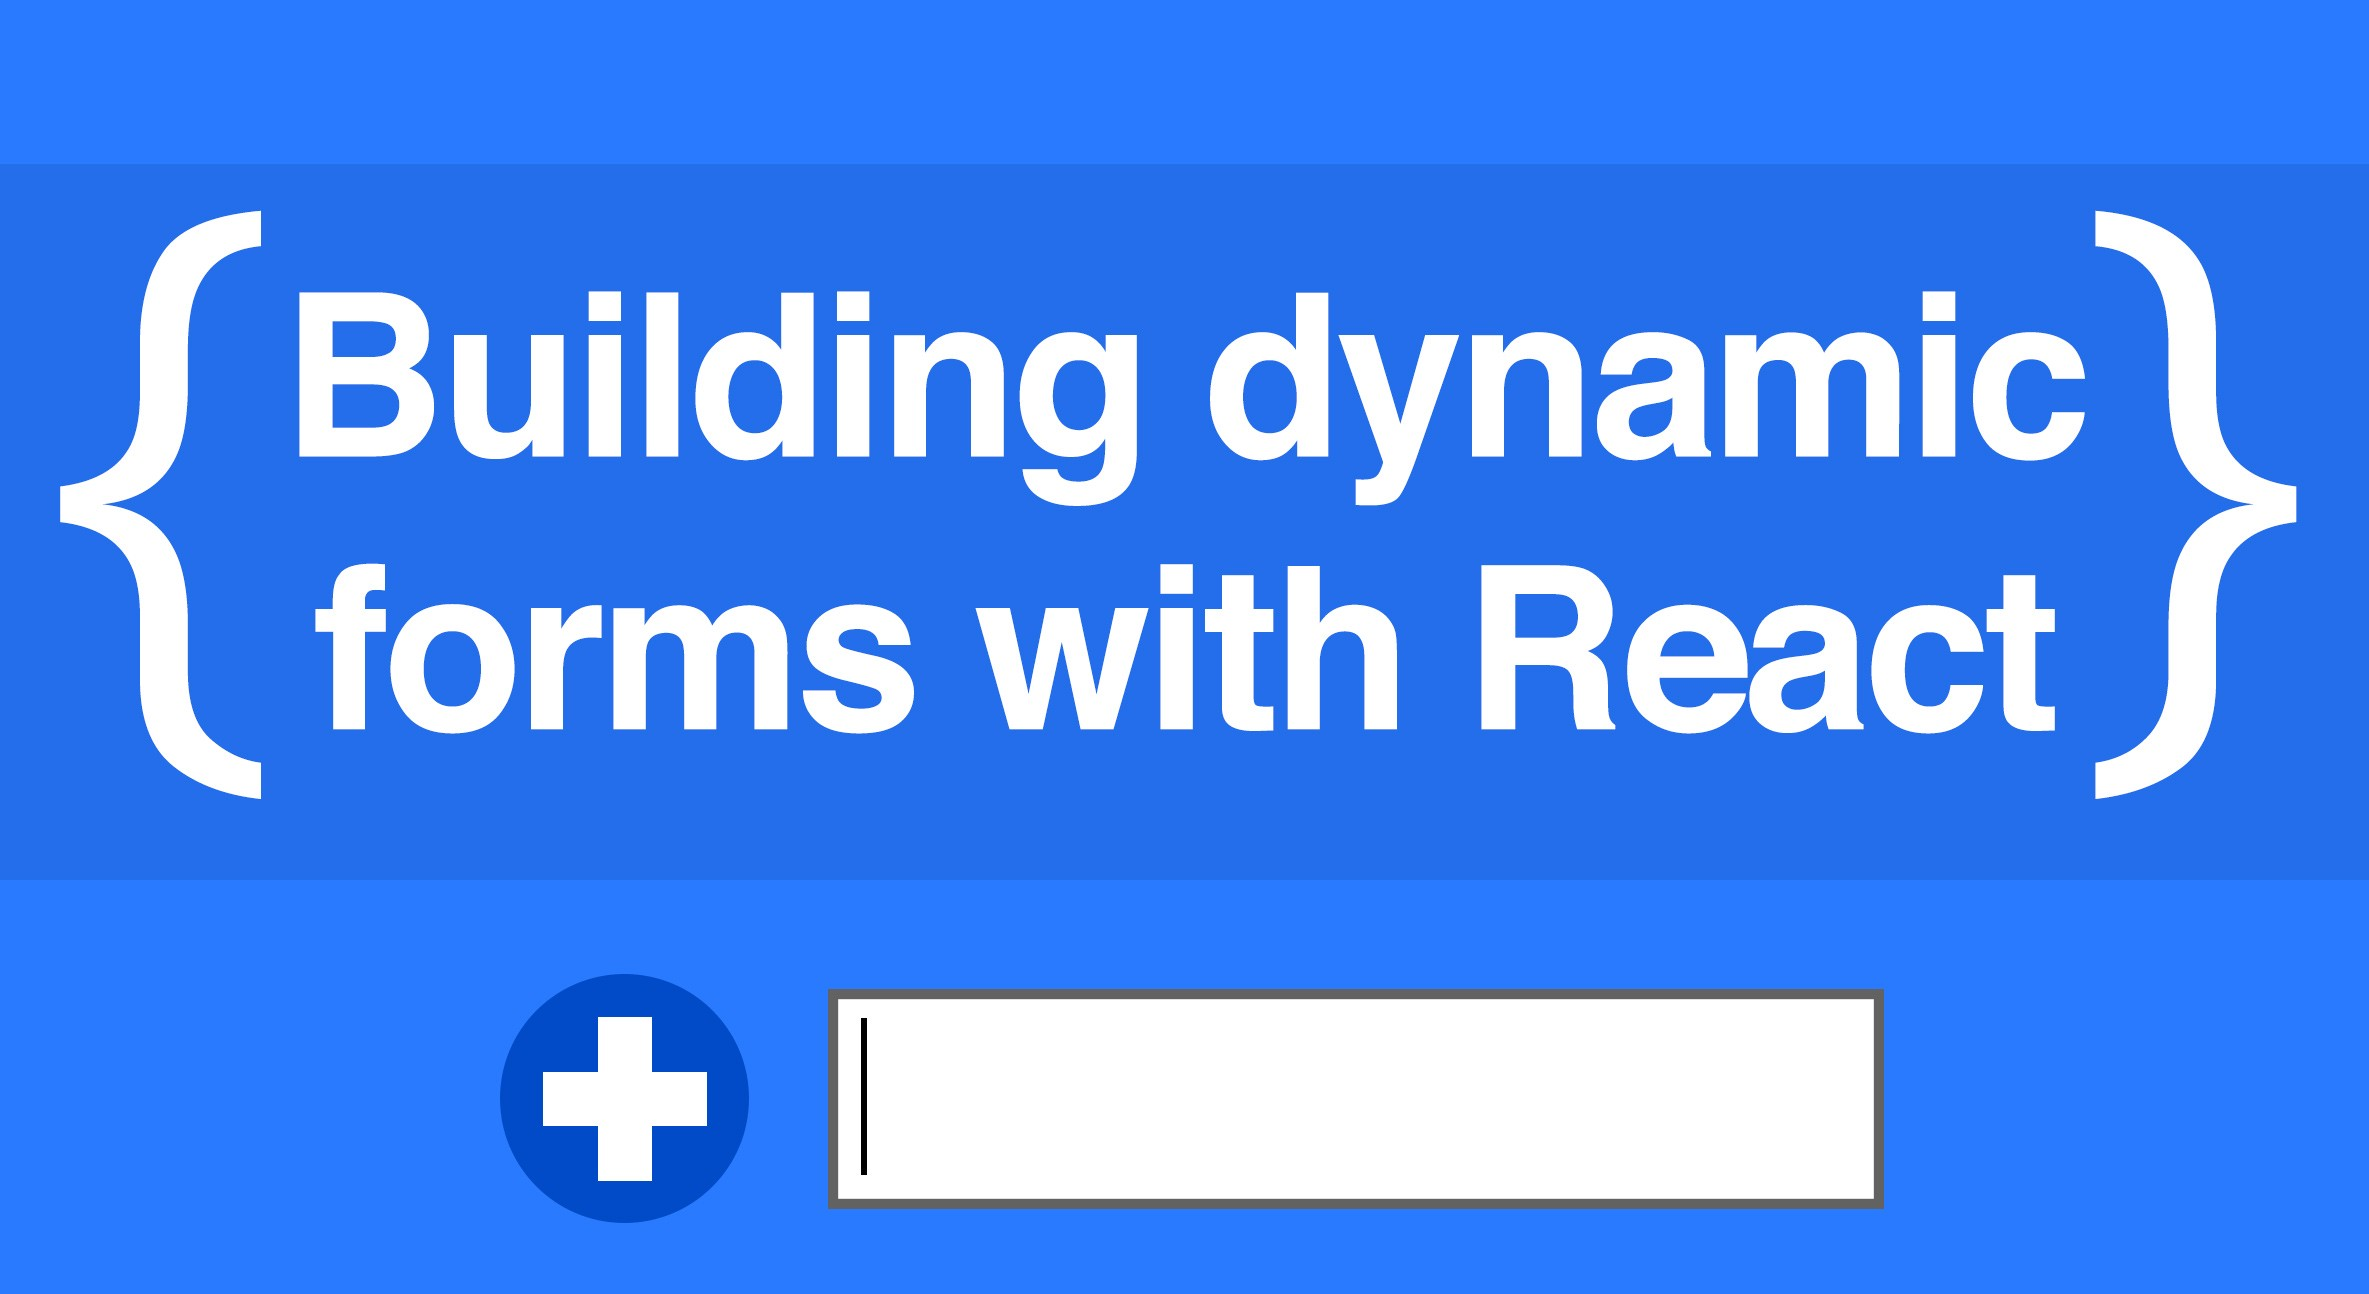 Building a Dynamic, Controlled Form with React - ITNEXT